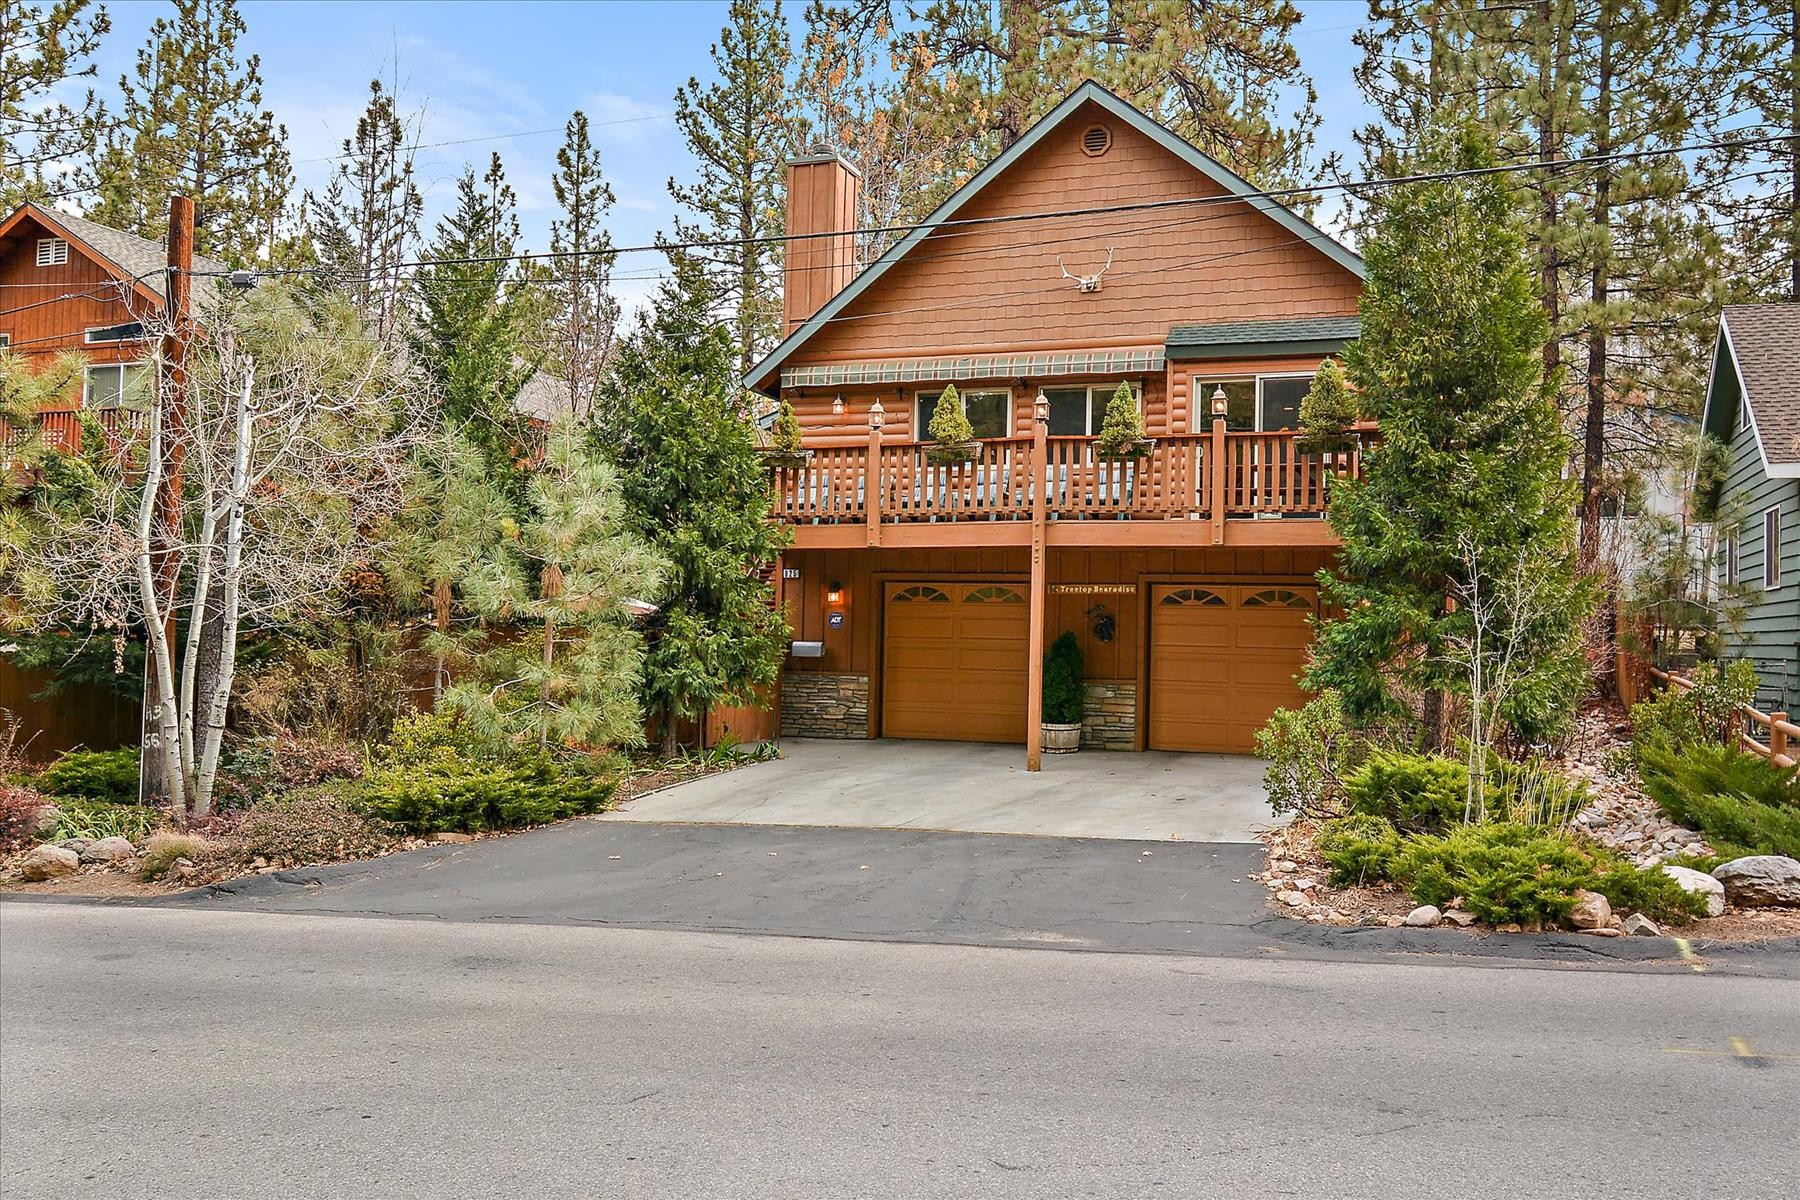 Single Family Homes for Sale at 625 Thrush Avenue, Big Bear Lake, California, 92315 625 Thrush Big Bear Lake, California 92315 United States